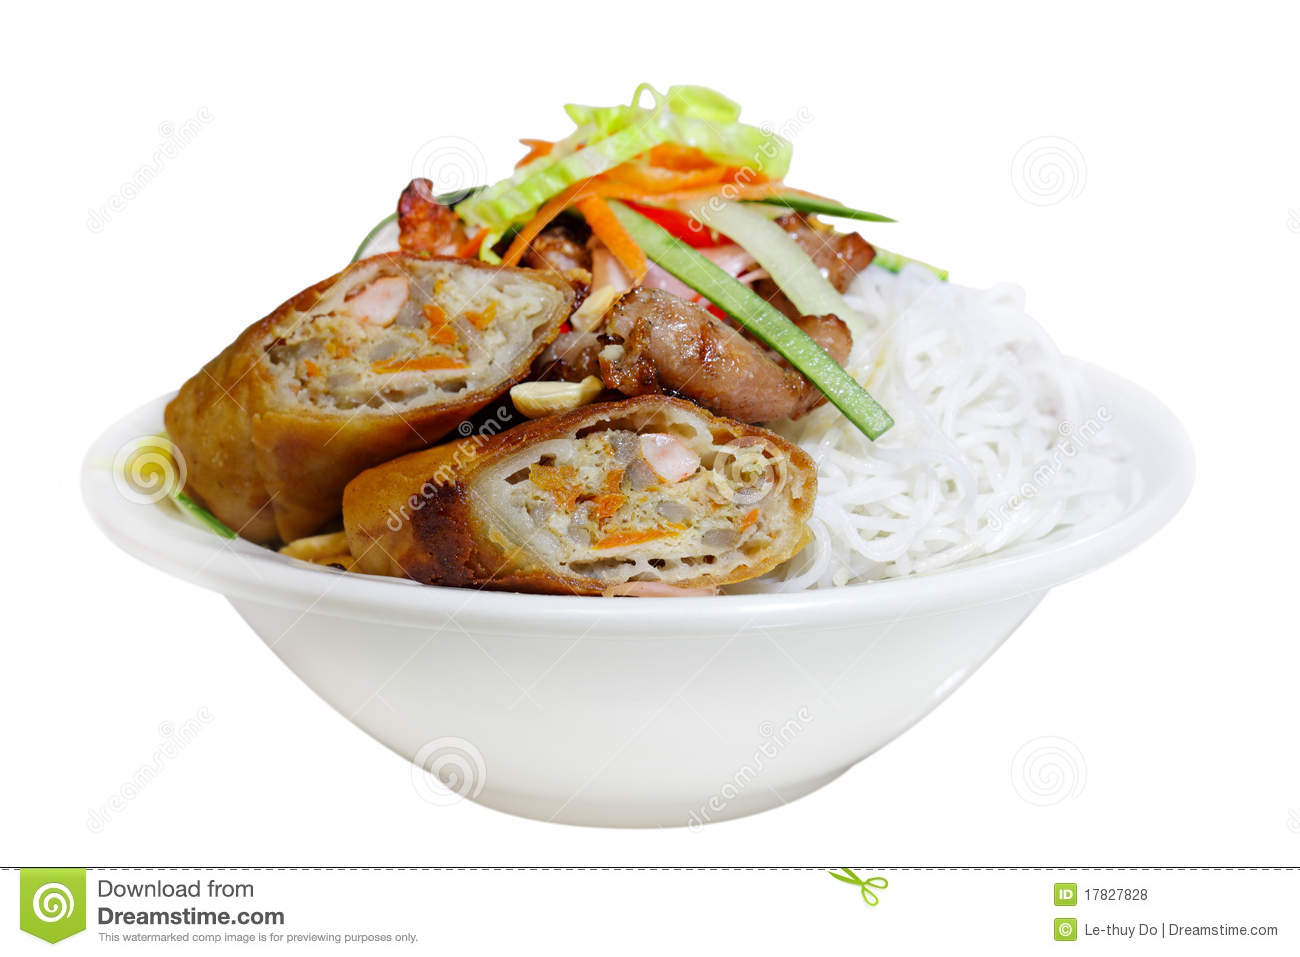 Eggroll noodle royalty free stock photos image 17827828 for Cuisine 3d dole